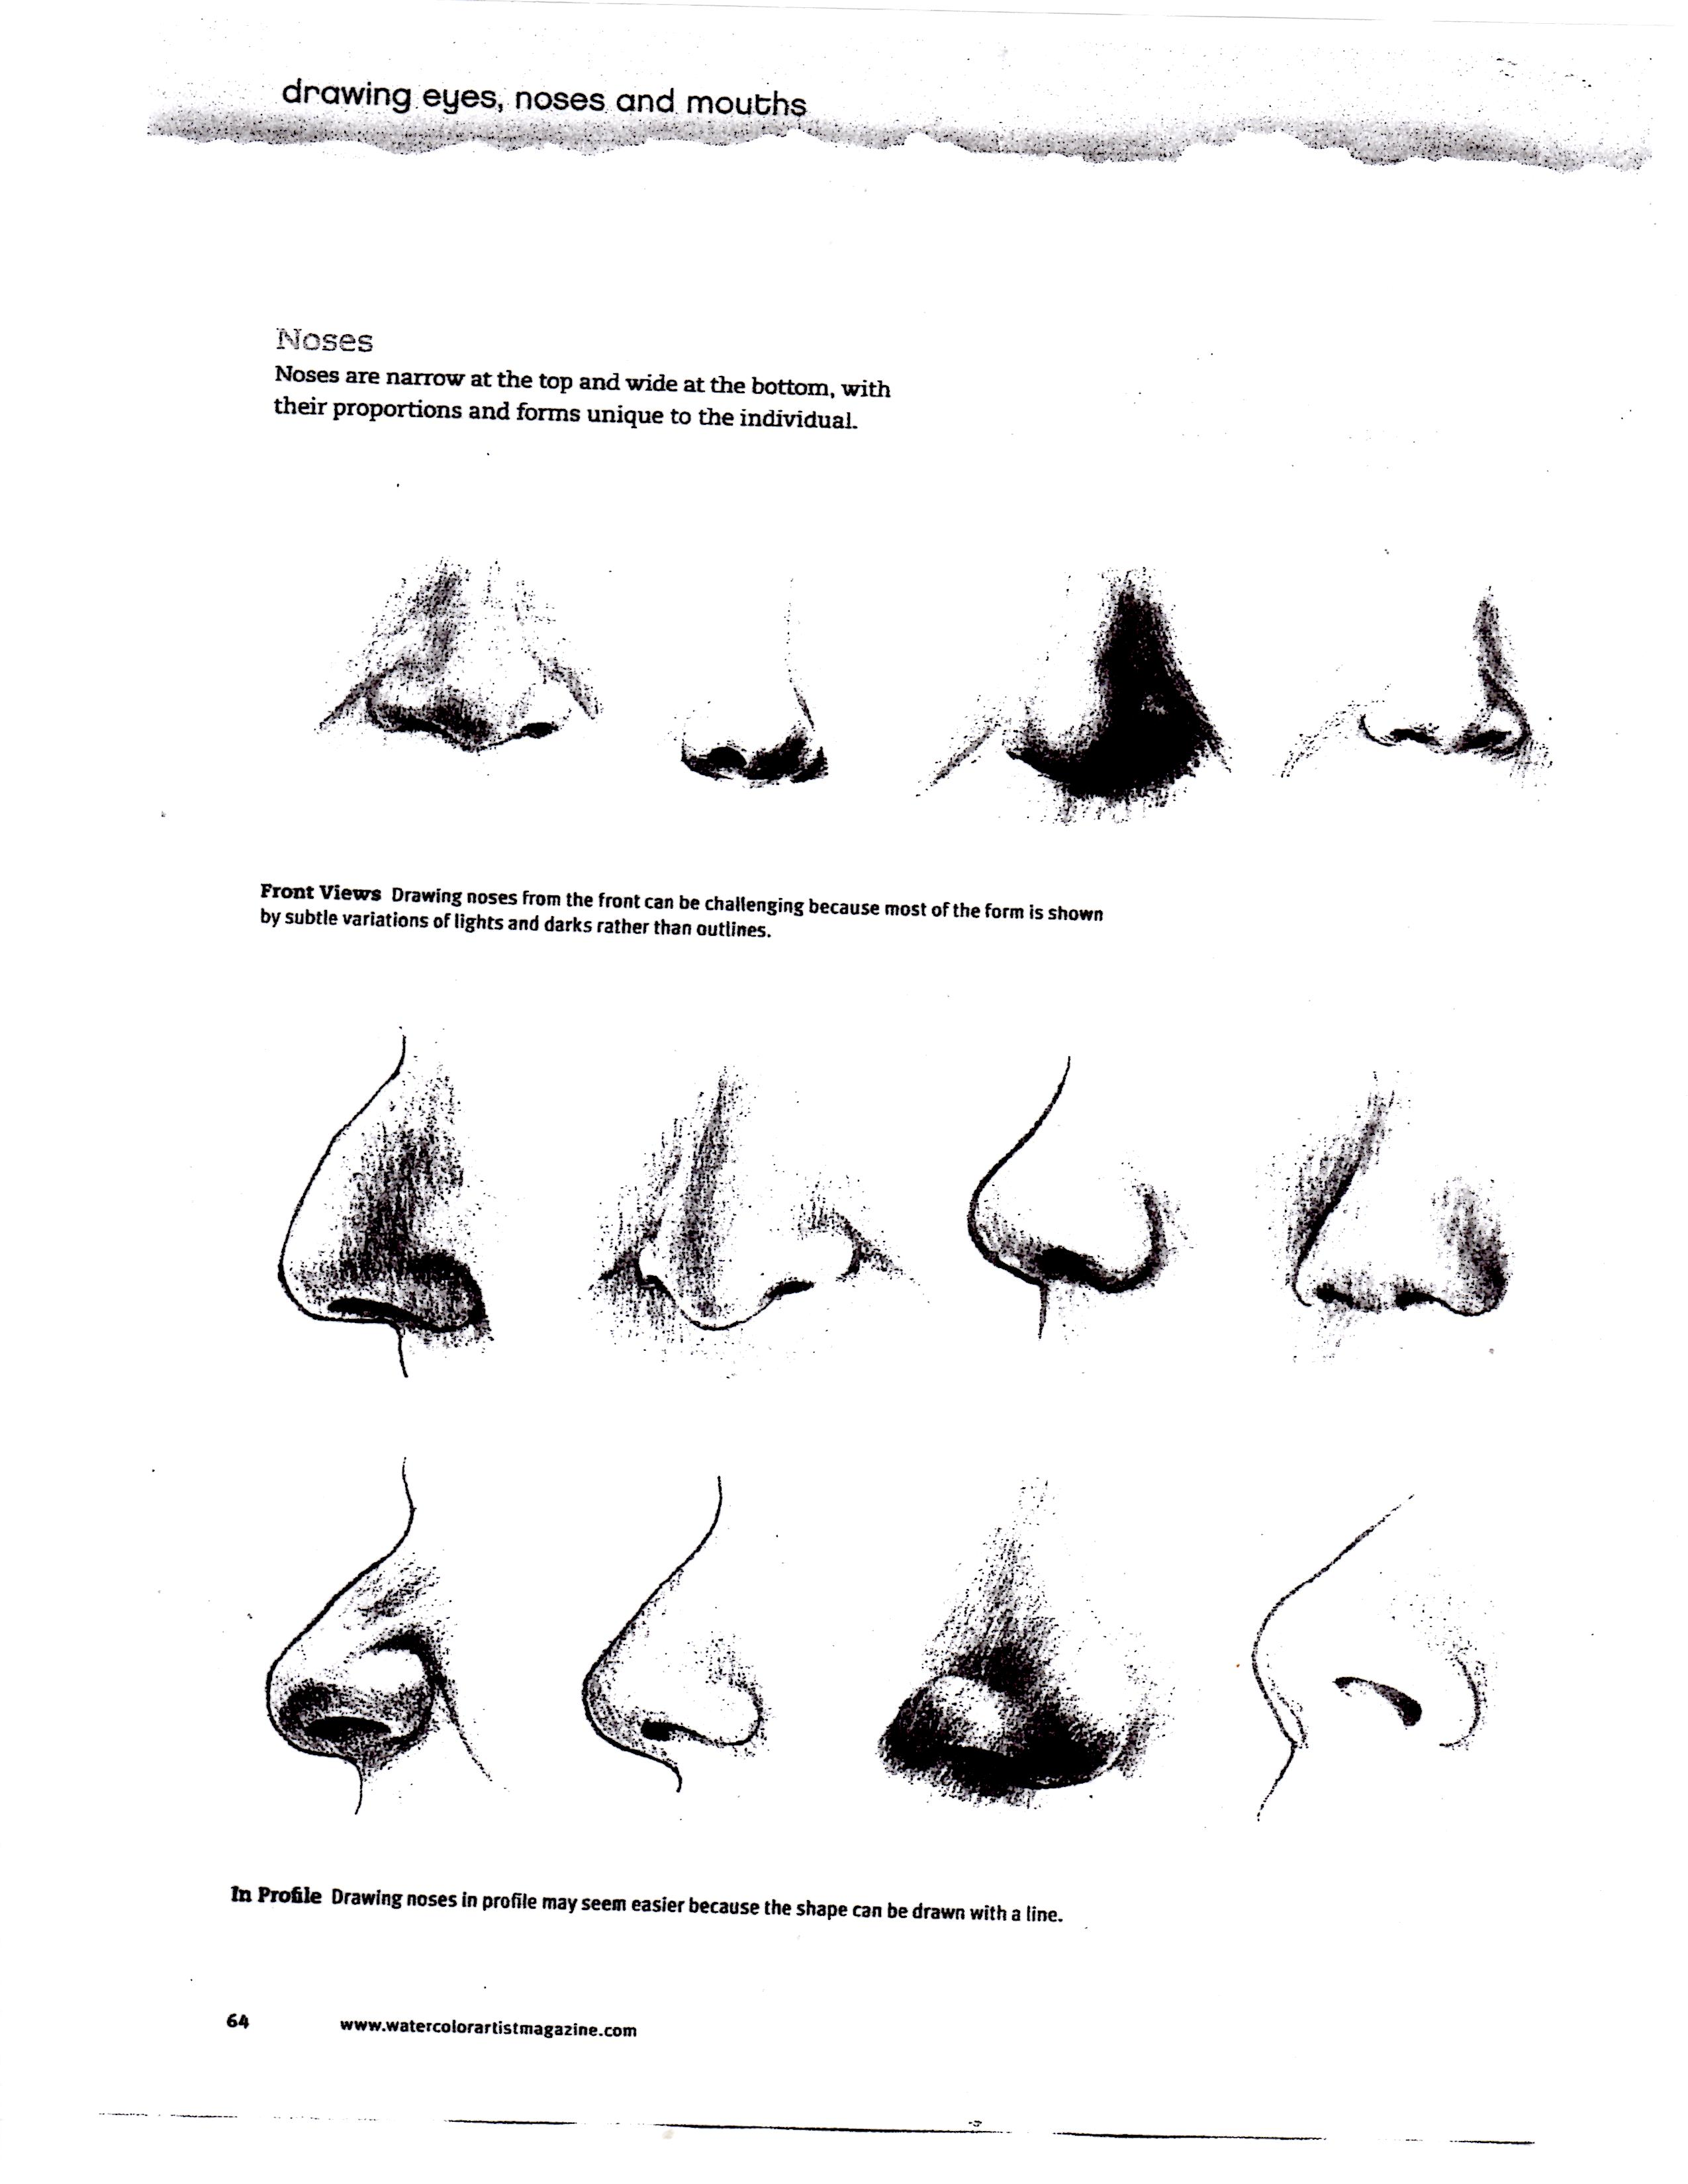 Drawn profile nose WHAT IN Page TO ArtWorks